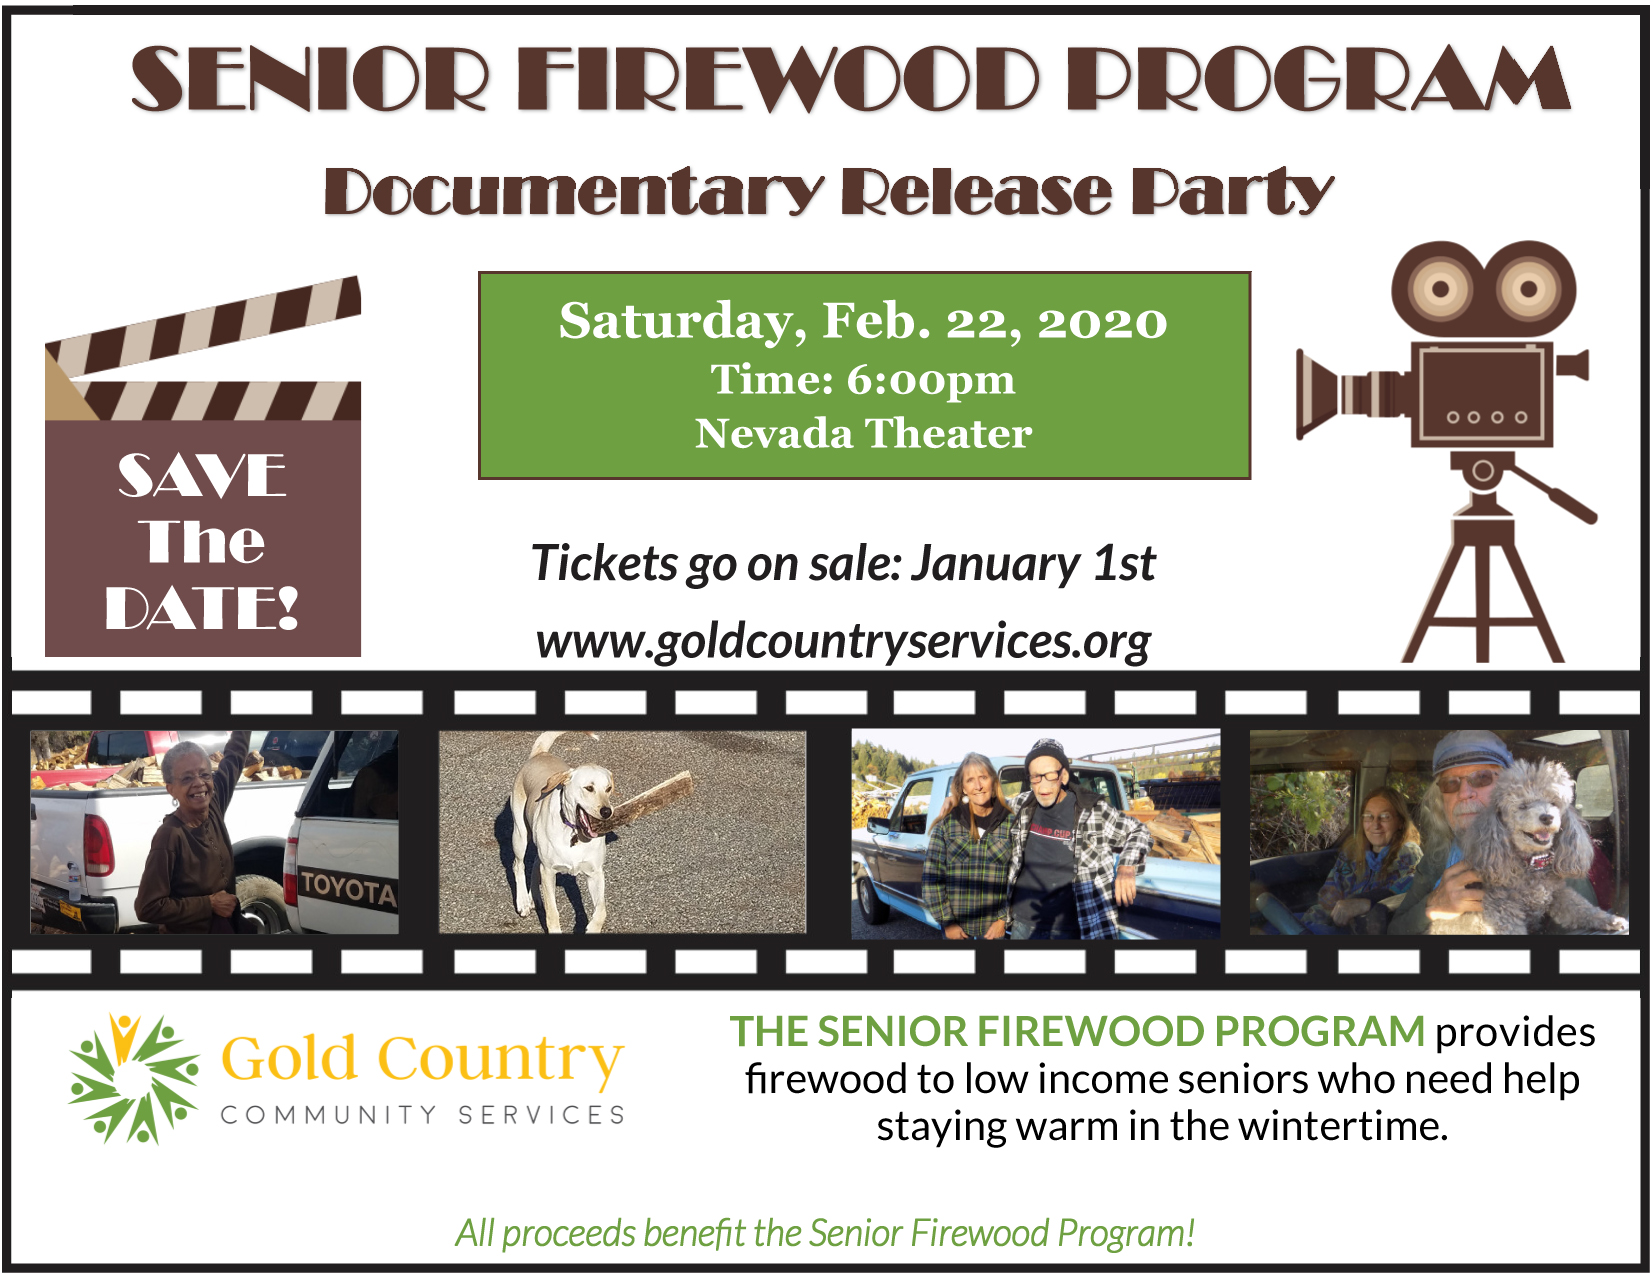 Senior Wood Program Documentary Release Party Flyer